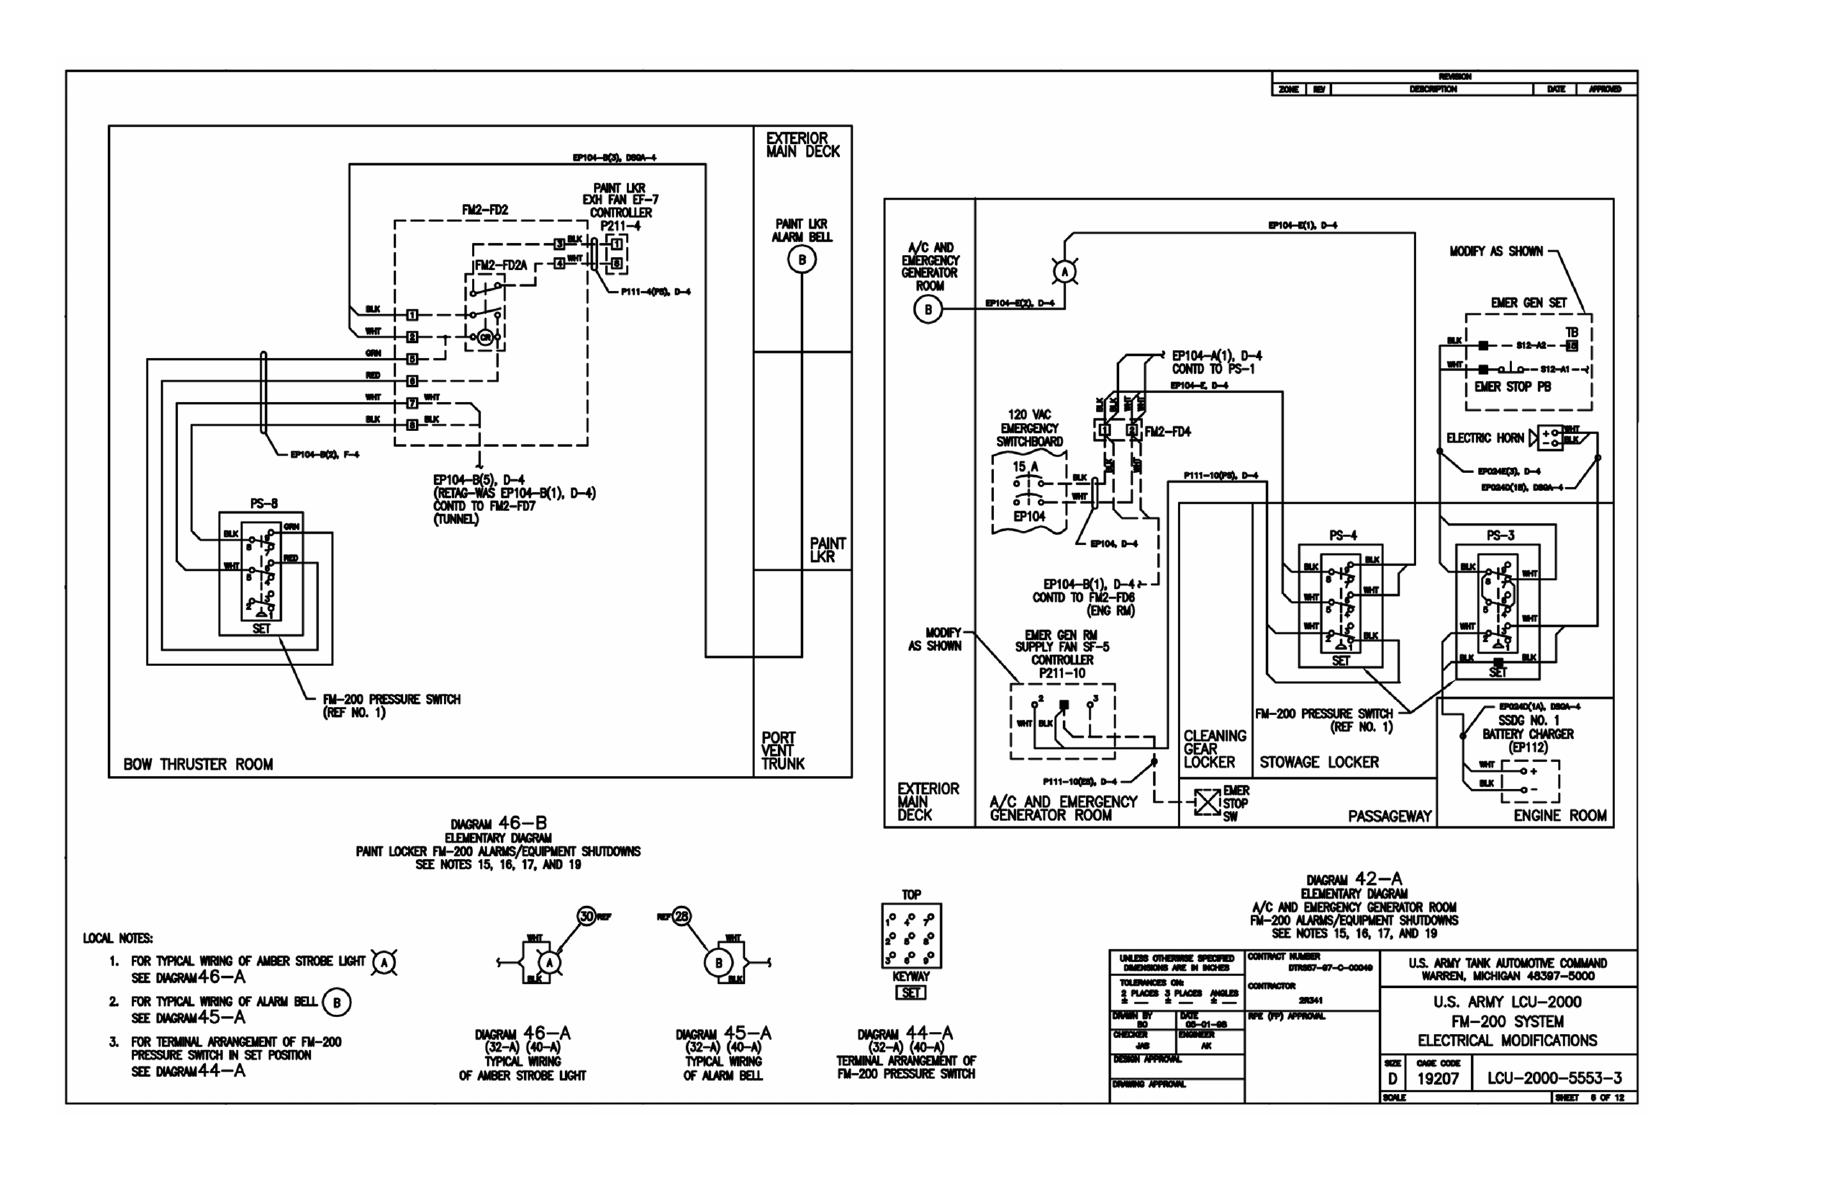 What Is Fm 200 Security Sistems